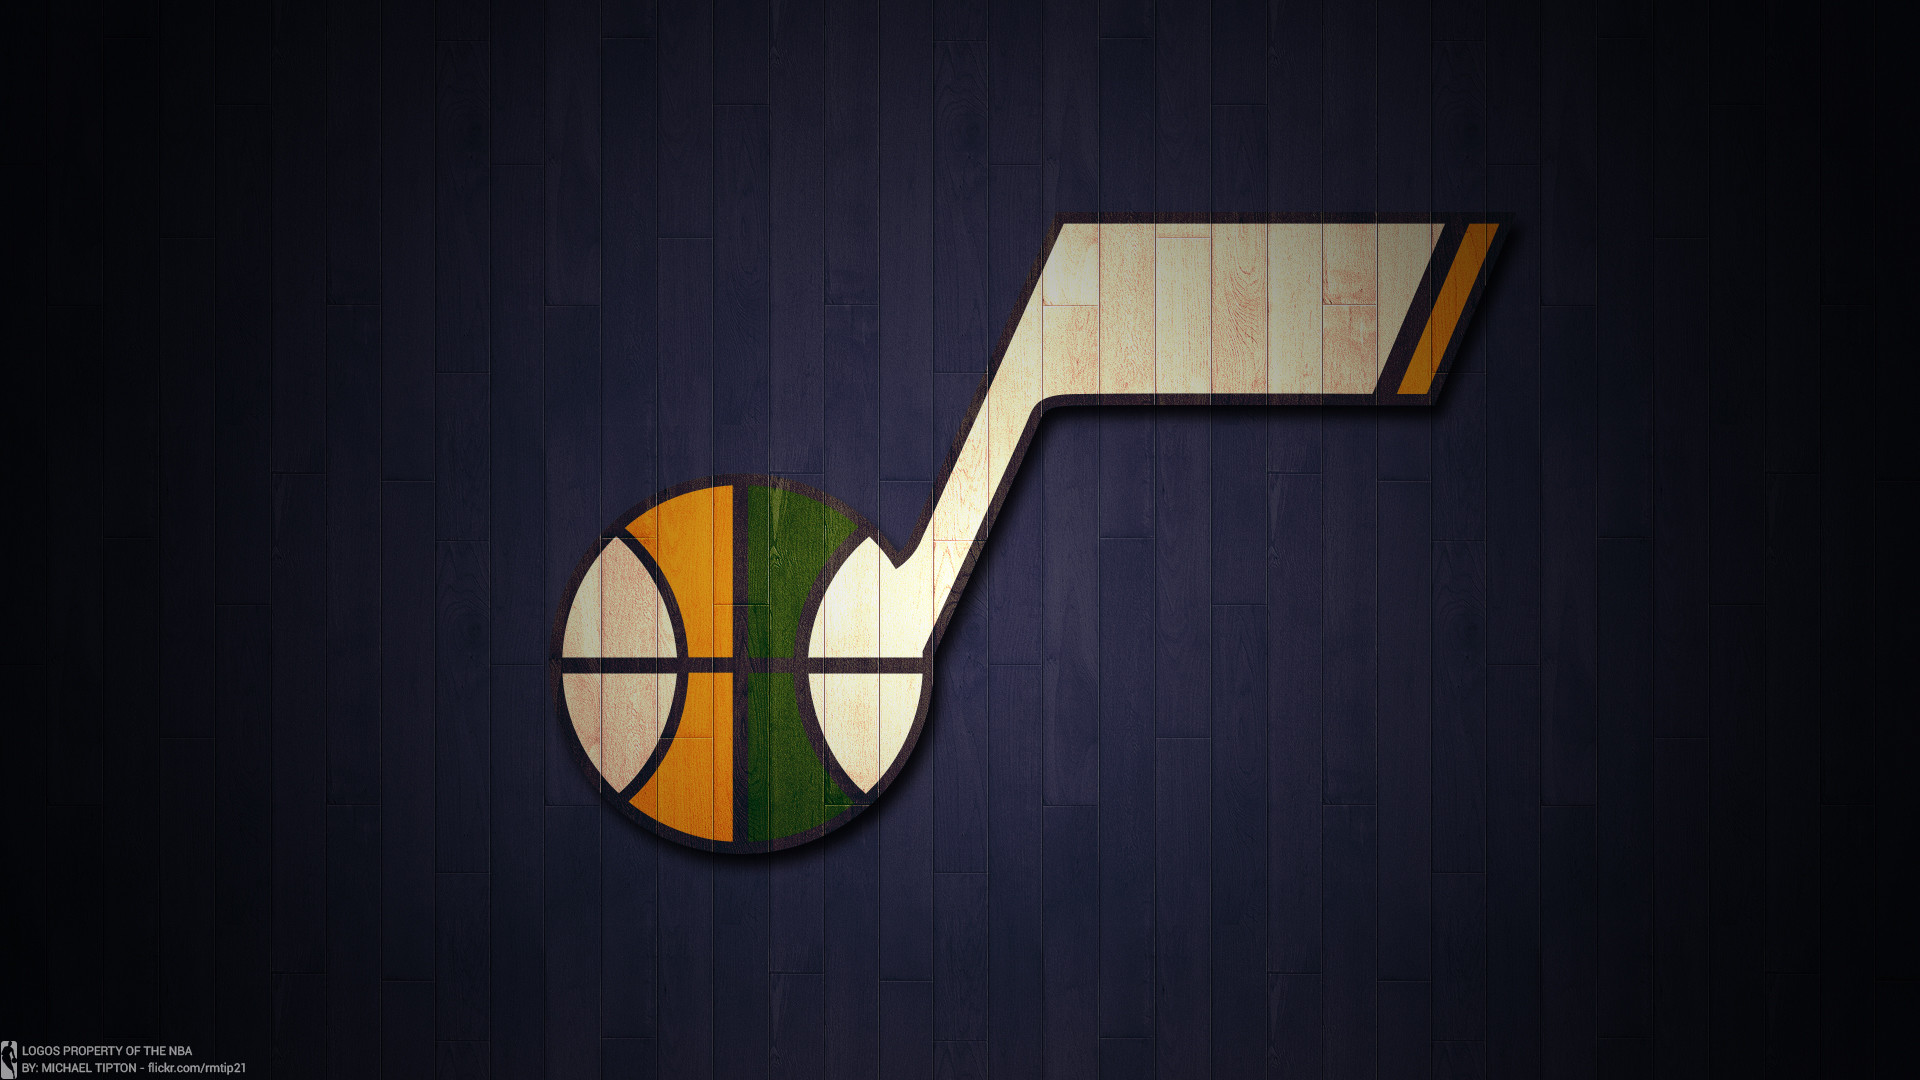 b4dfdf2bed3a NBA 2017 Utah Jazz hardwood logo desktop wallpaper .